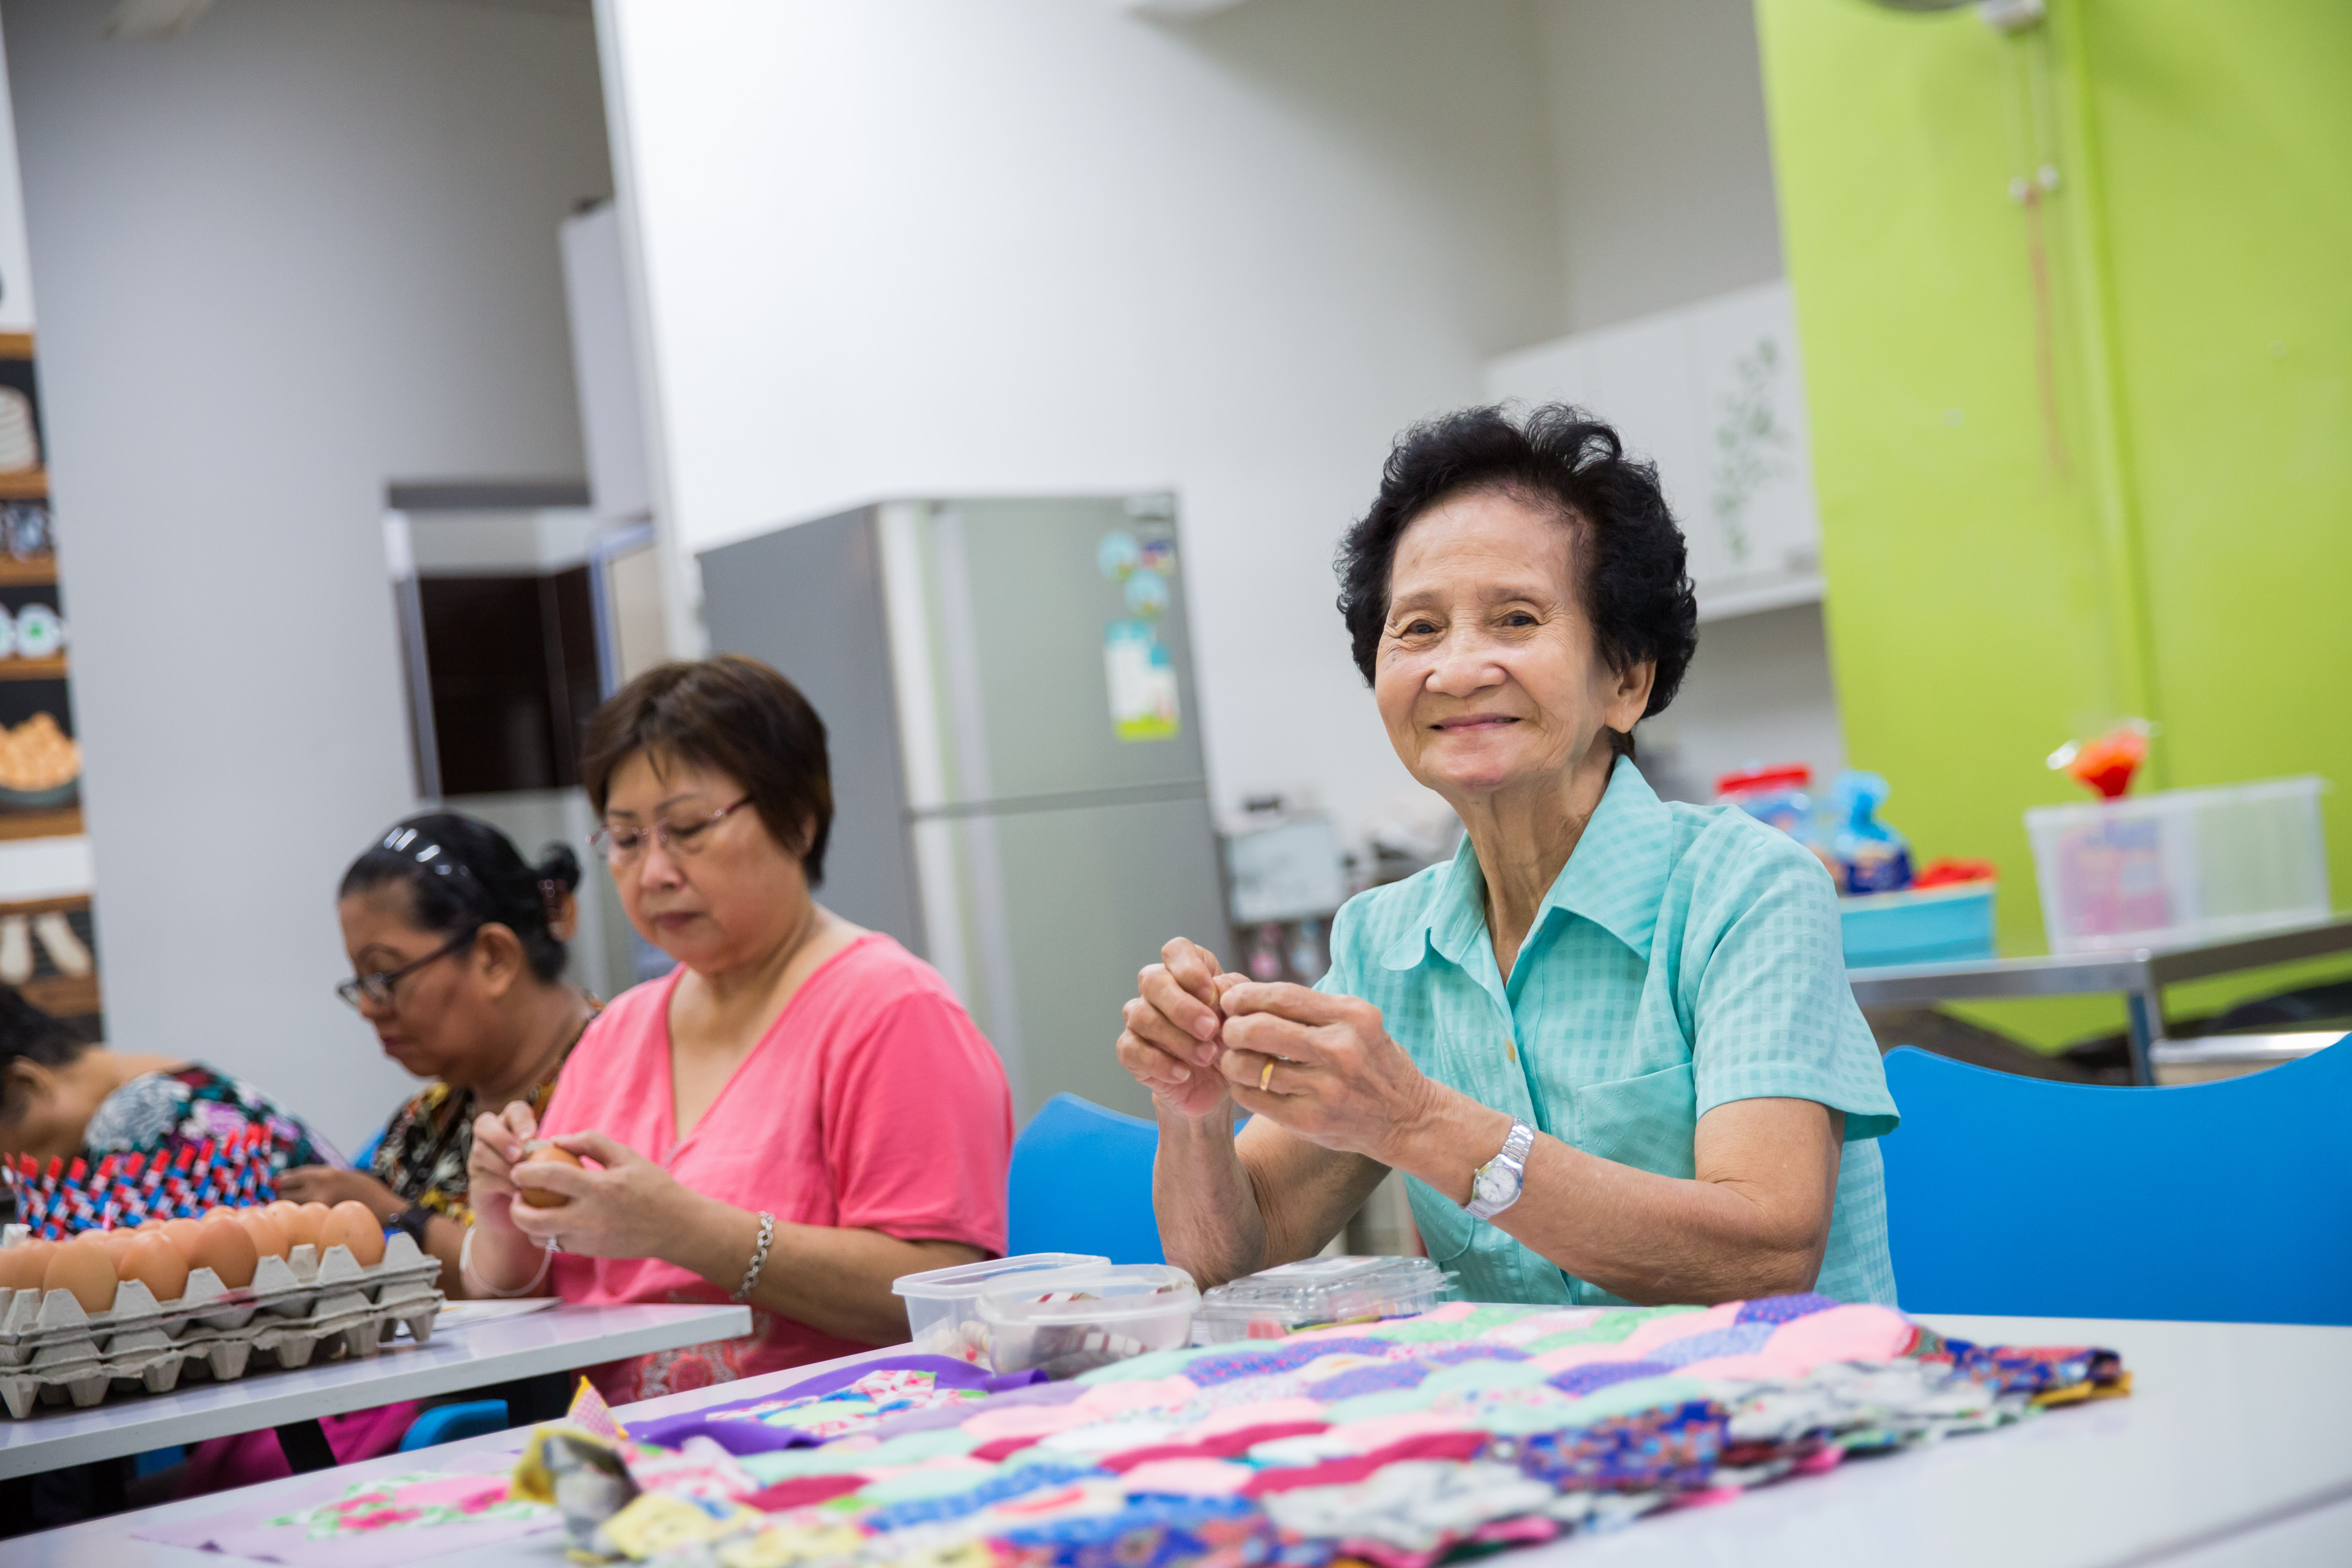 eOrientation Course on Working with Seniors